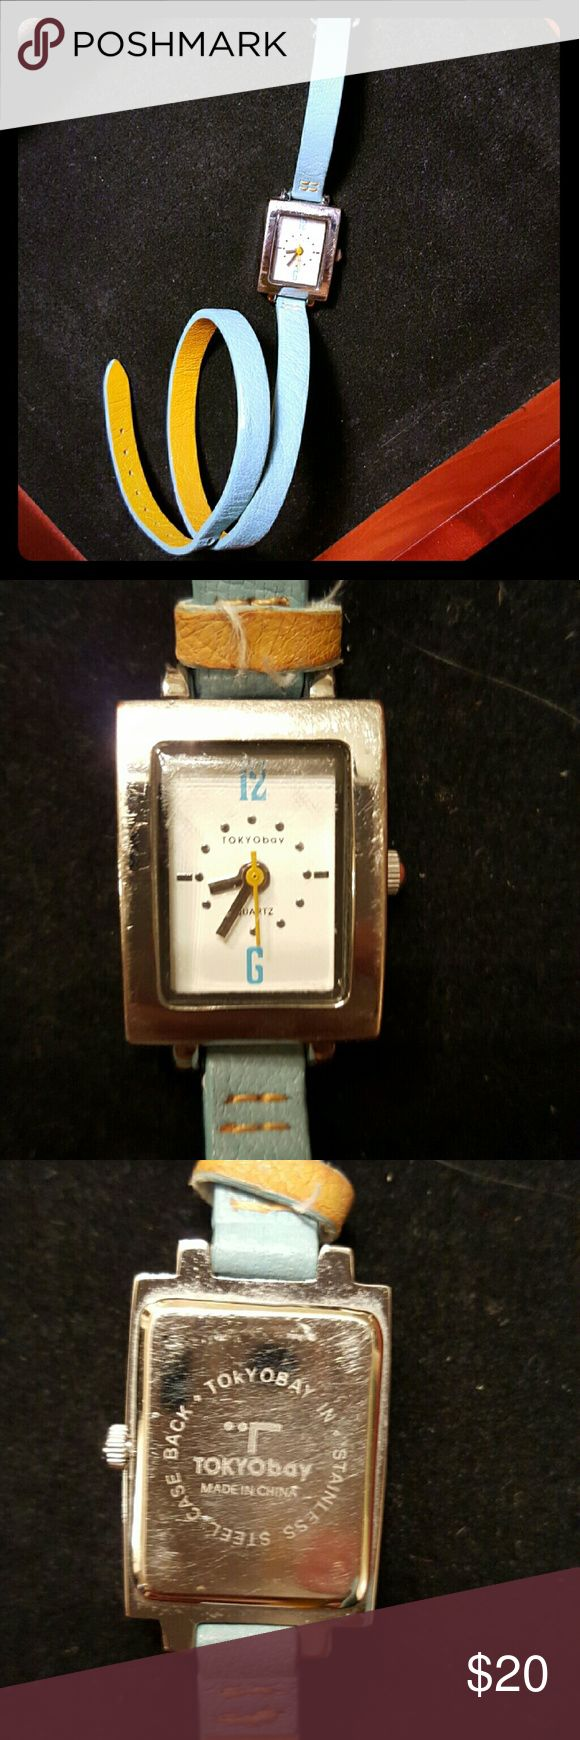 =sale= Tokyo bay watch It needs new battery and works in great condition. Real leather! Offer is welcomed! Jewelry